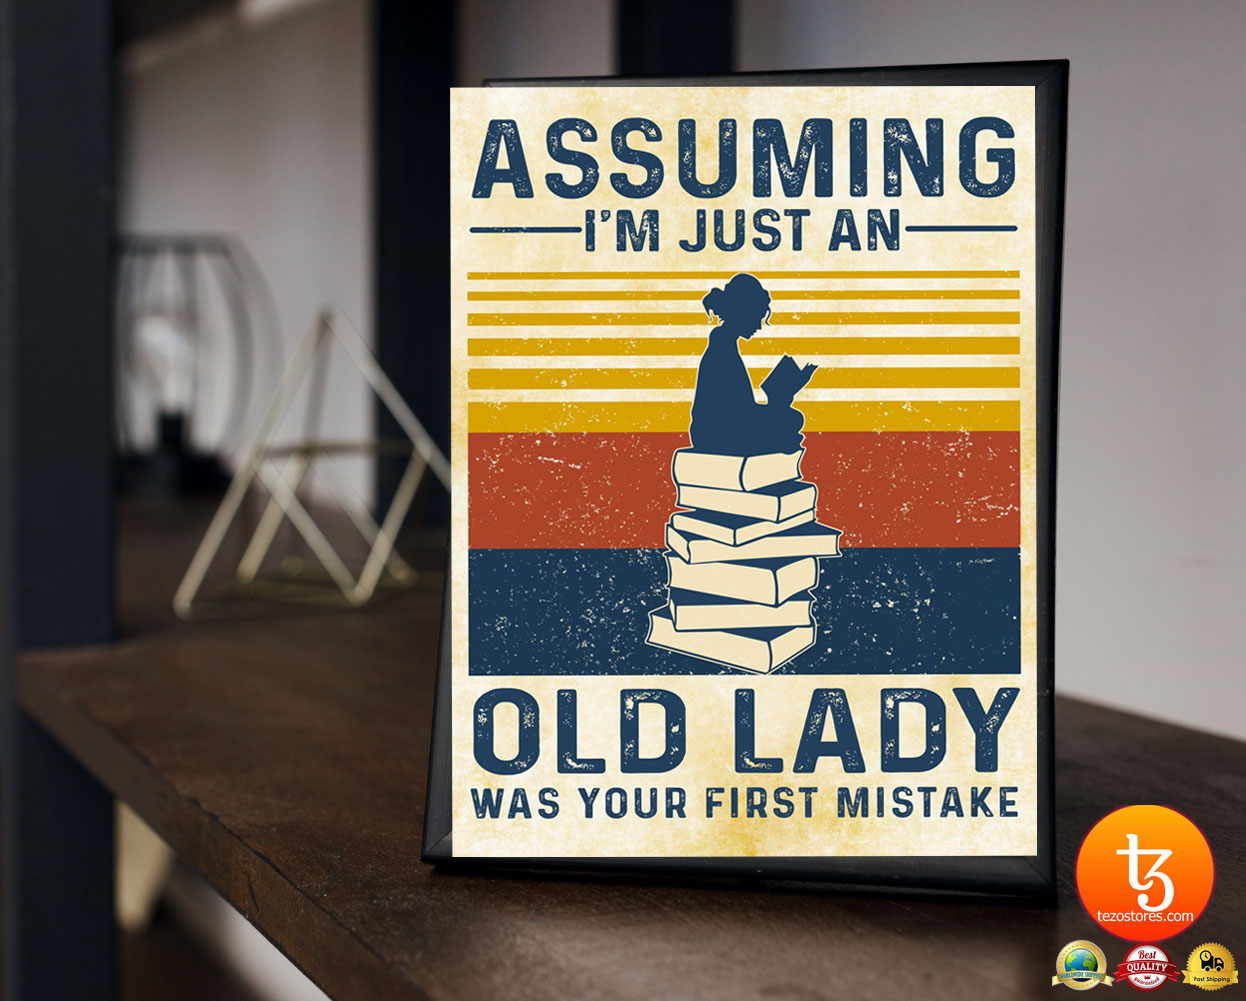 Assuming i'm just an old lady was your first mistake poster